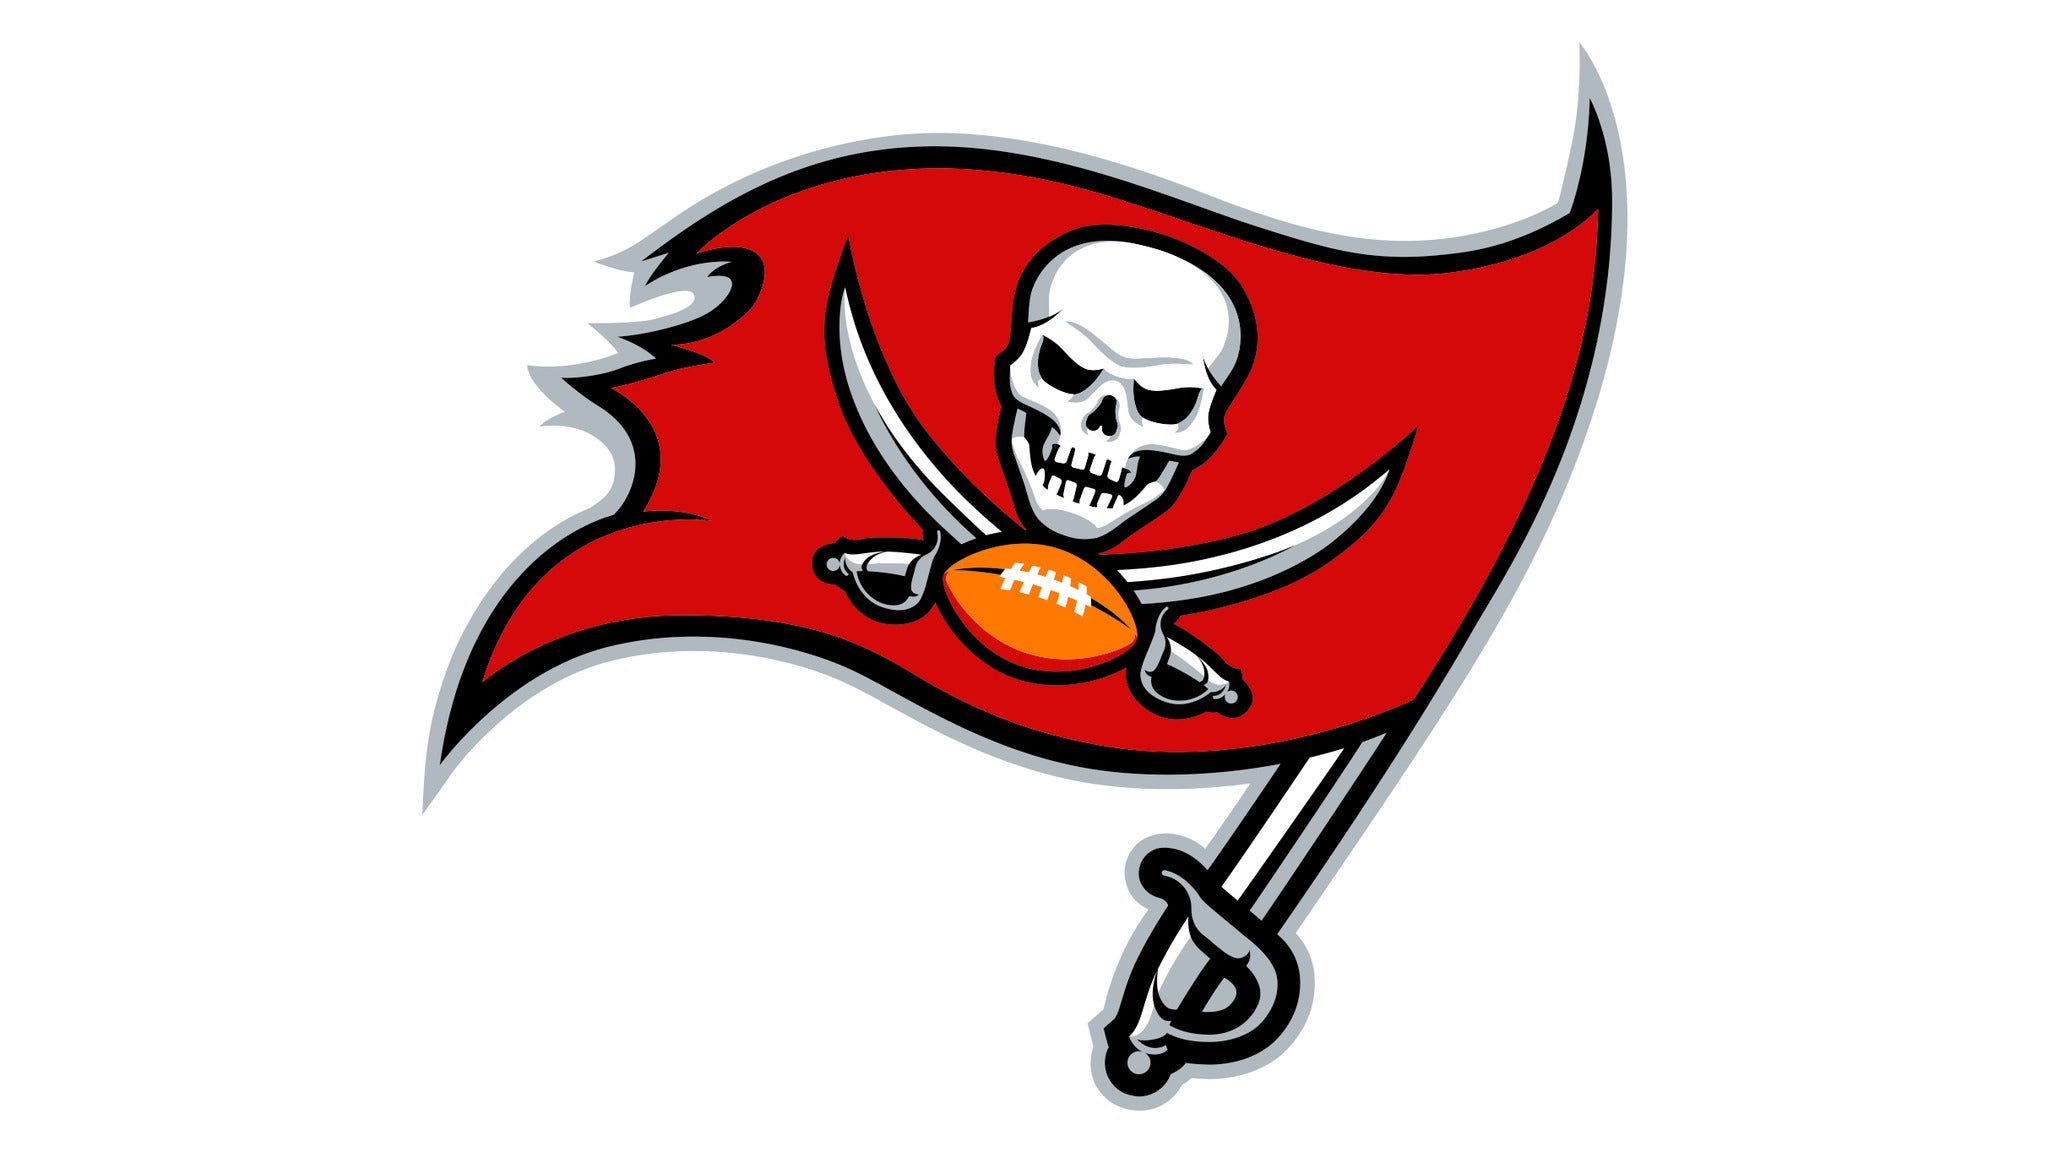 Tampa Bay Buccaneers vs. Atlanta Falcons